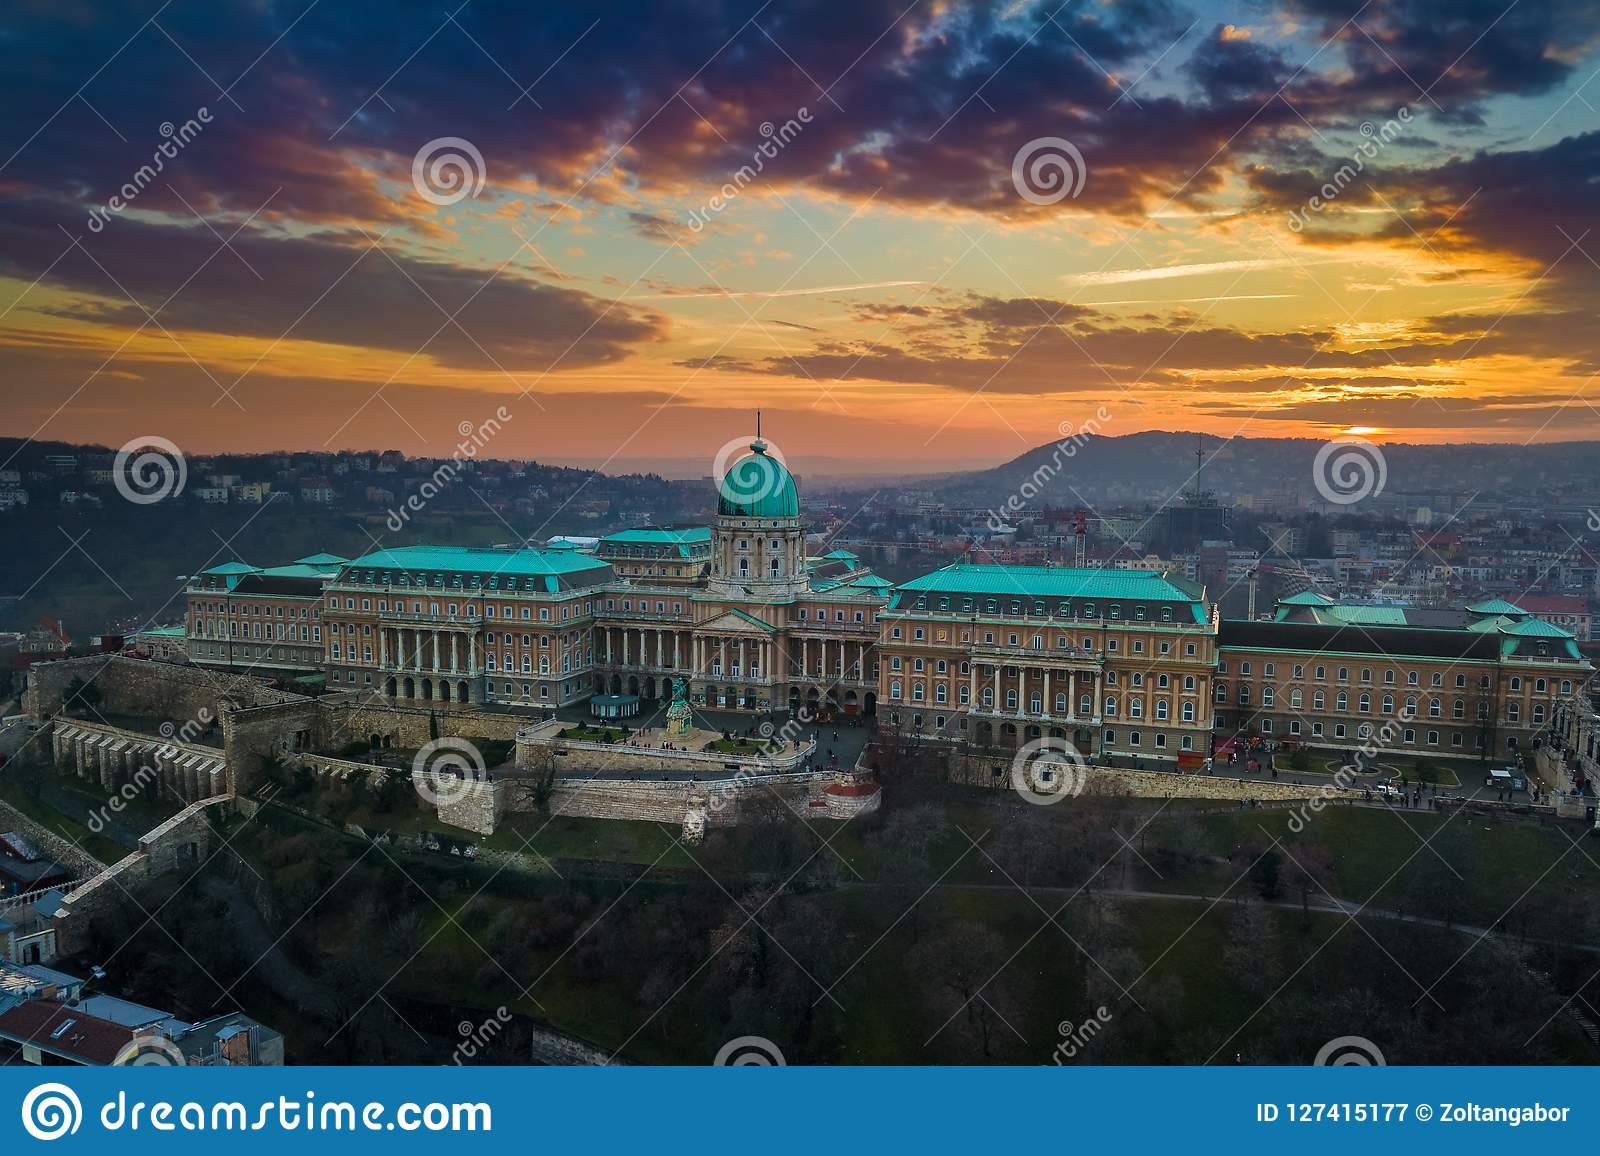 Budapest, Hungary - Aerial panoramic view of the famous Buda Castle Royal Palace at sunset with amazing colorful sky